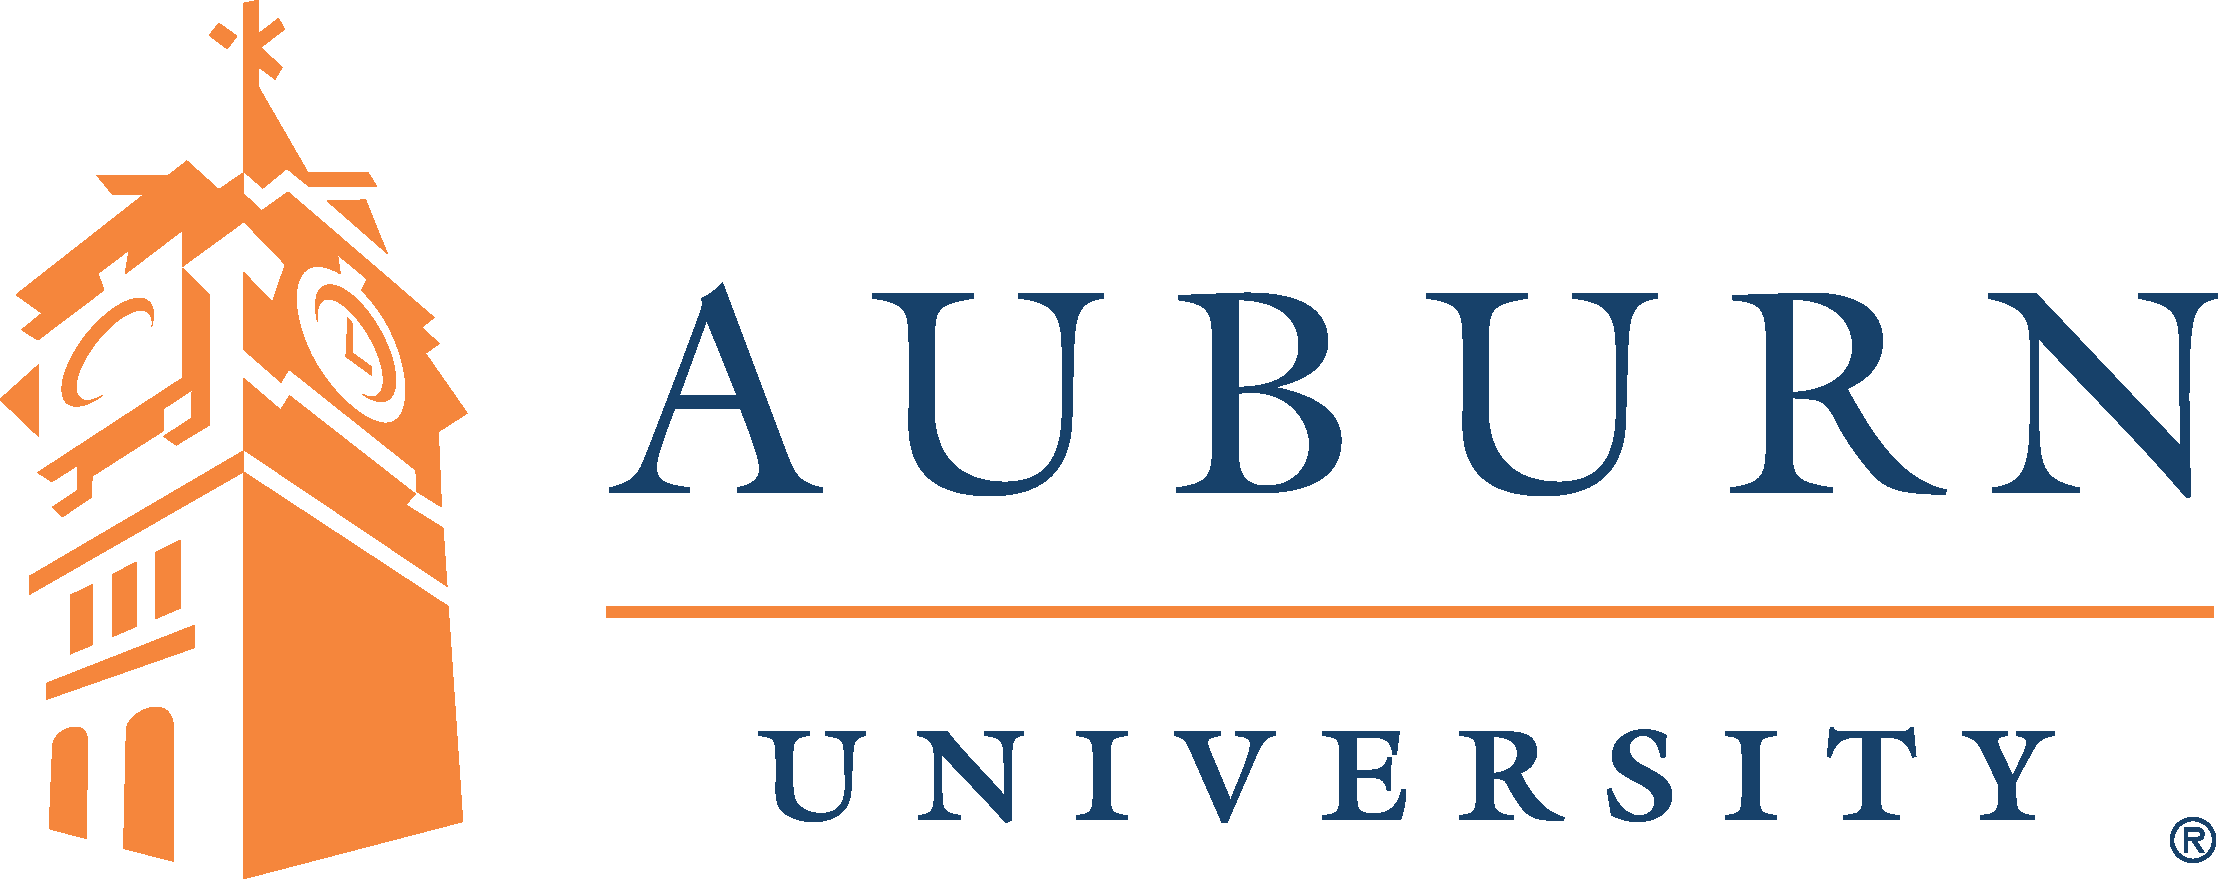 auburn university seal and logos vector eps free download logo rh freelogovectors net auburn university logo font auburn university logo standards